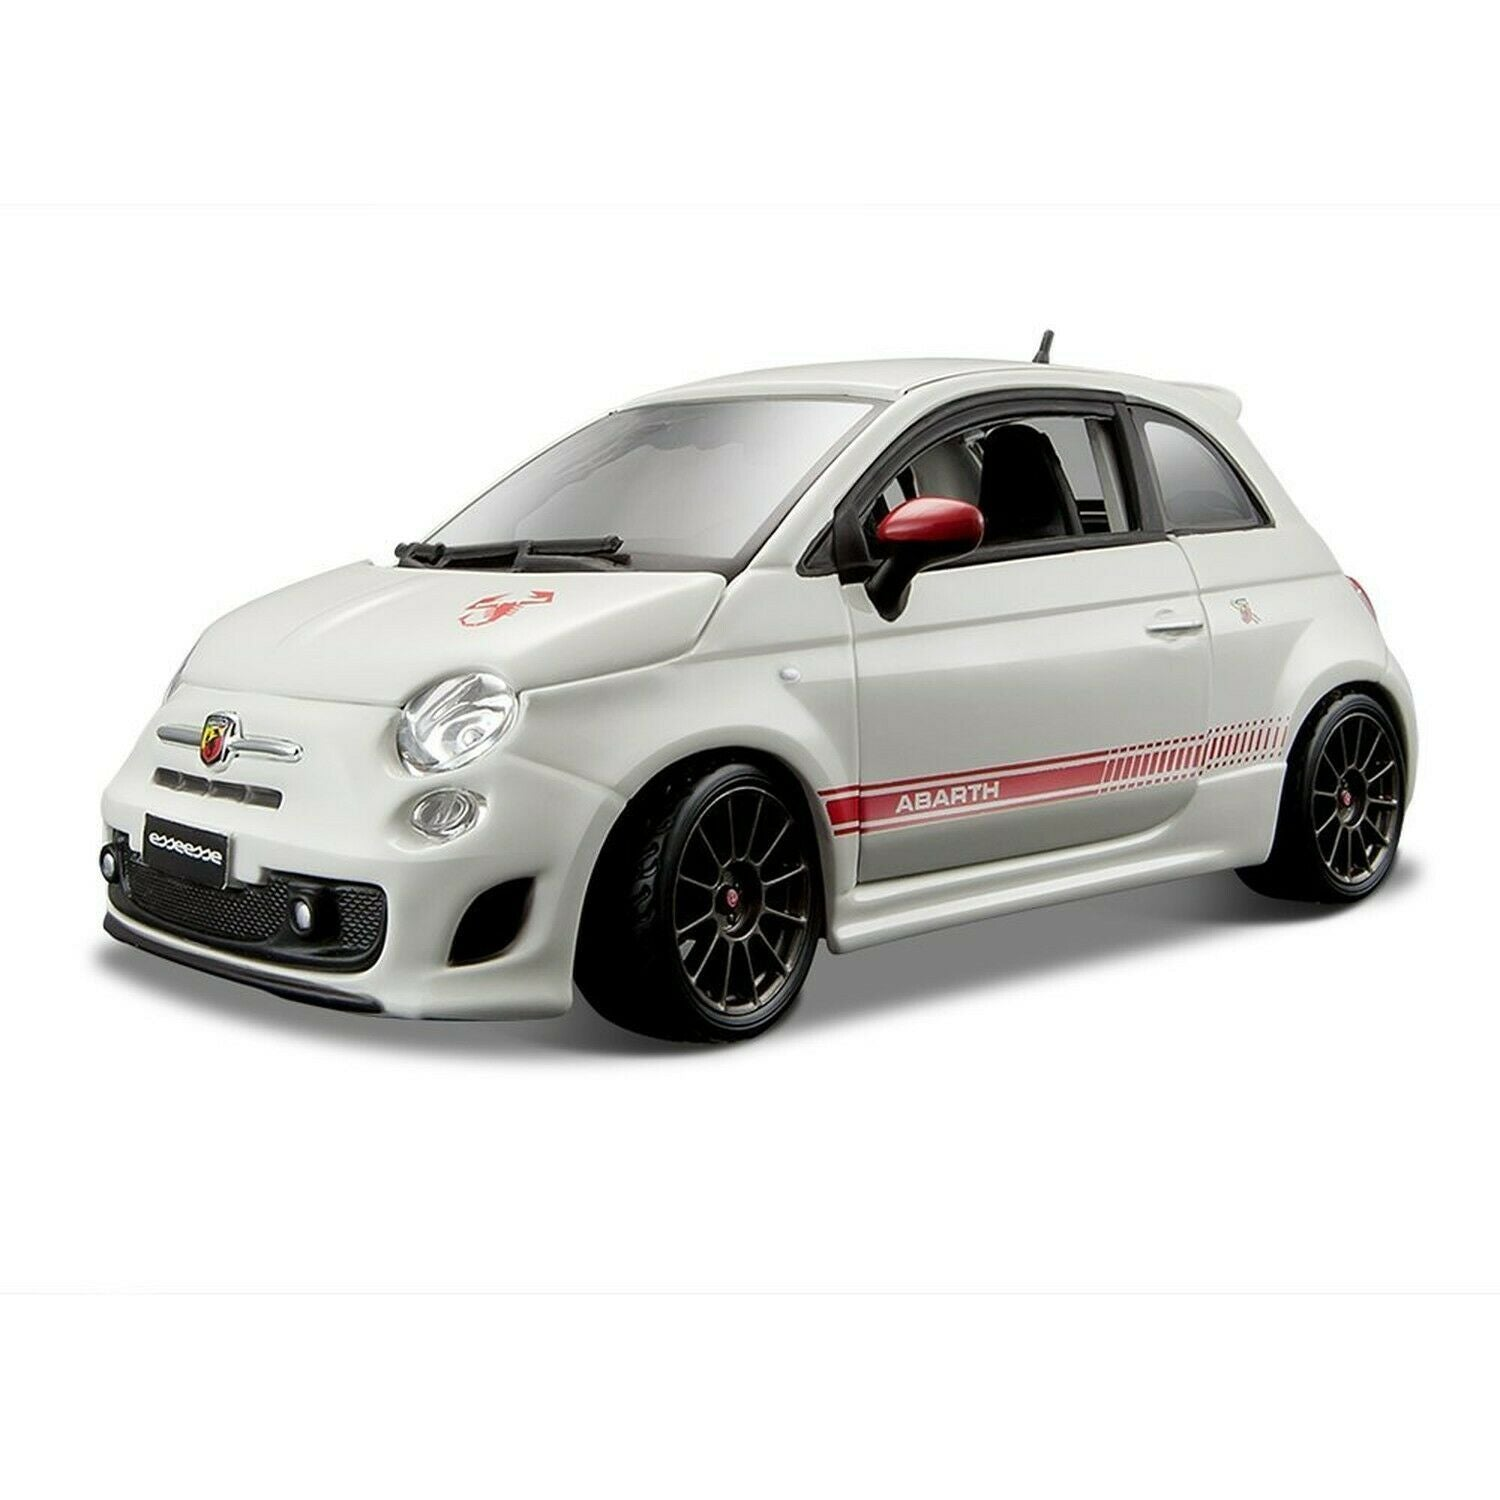 BU 1/24 - ABARTH 500 ESSEESSE - Wild Willy - Toys Lebanon